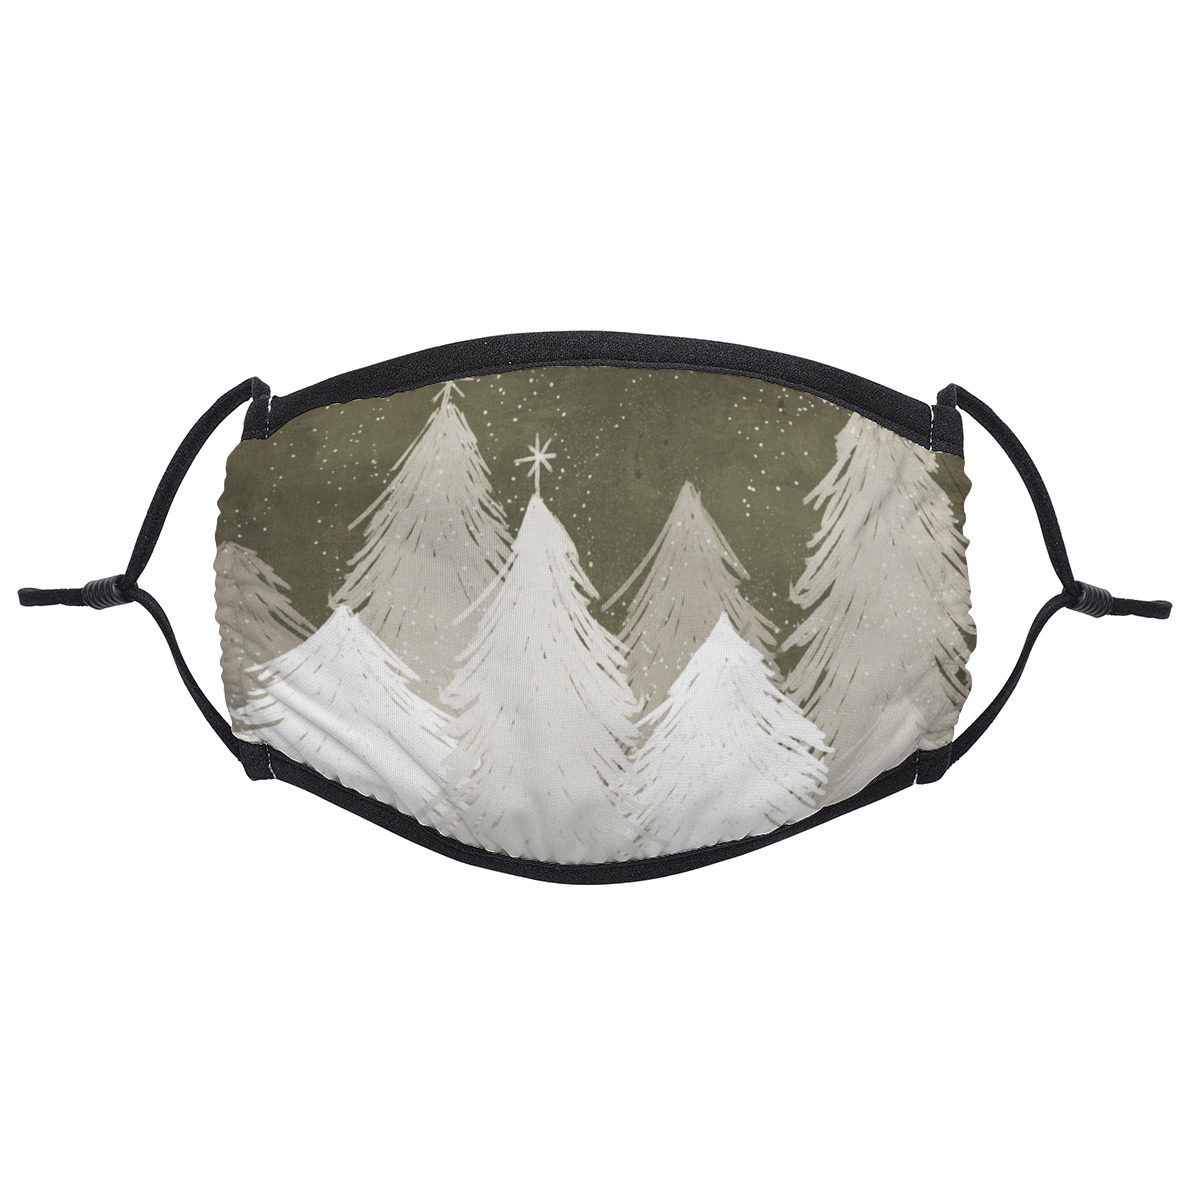 Christmas White & Gray Snow-Covered Pine Trees Adult ClothWomen  Black  Men MouthFaceMask ProtectionCover 10531